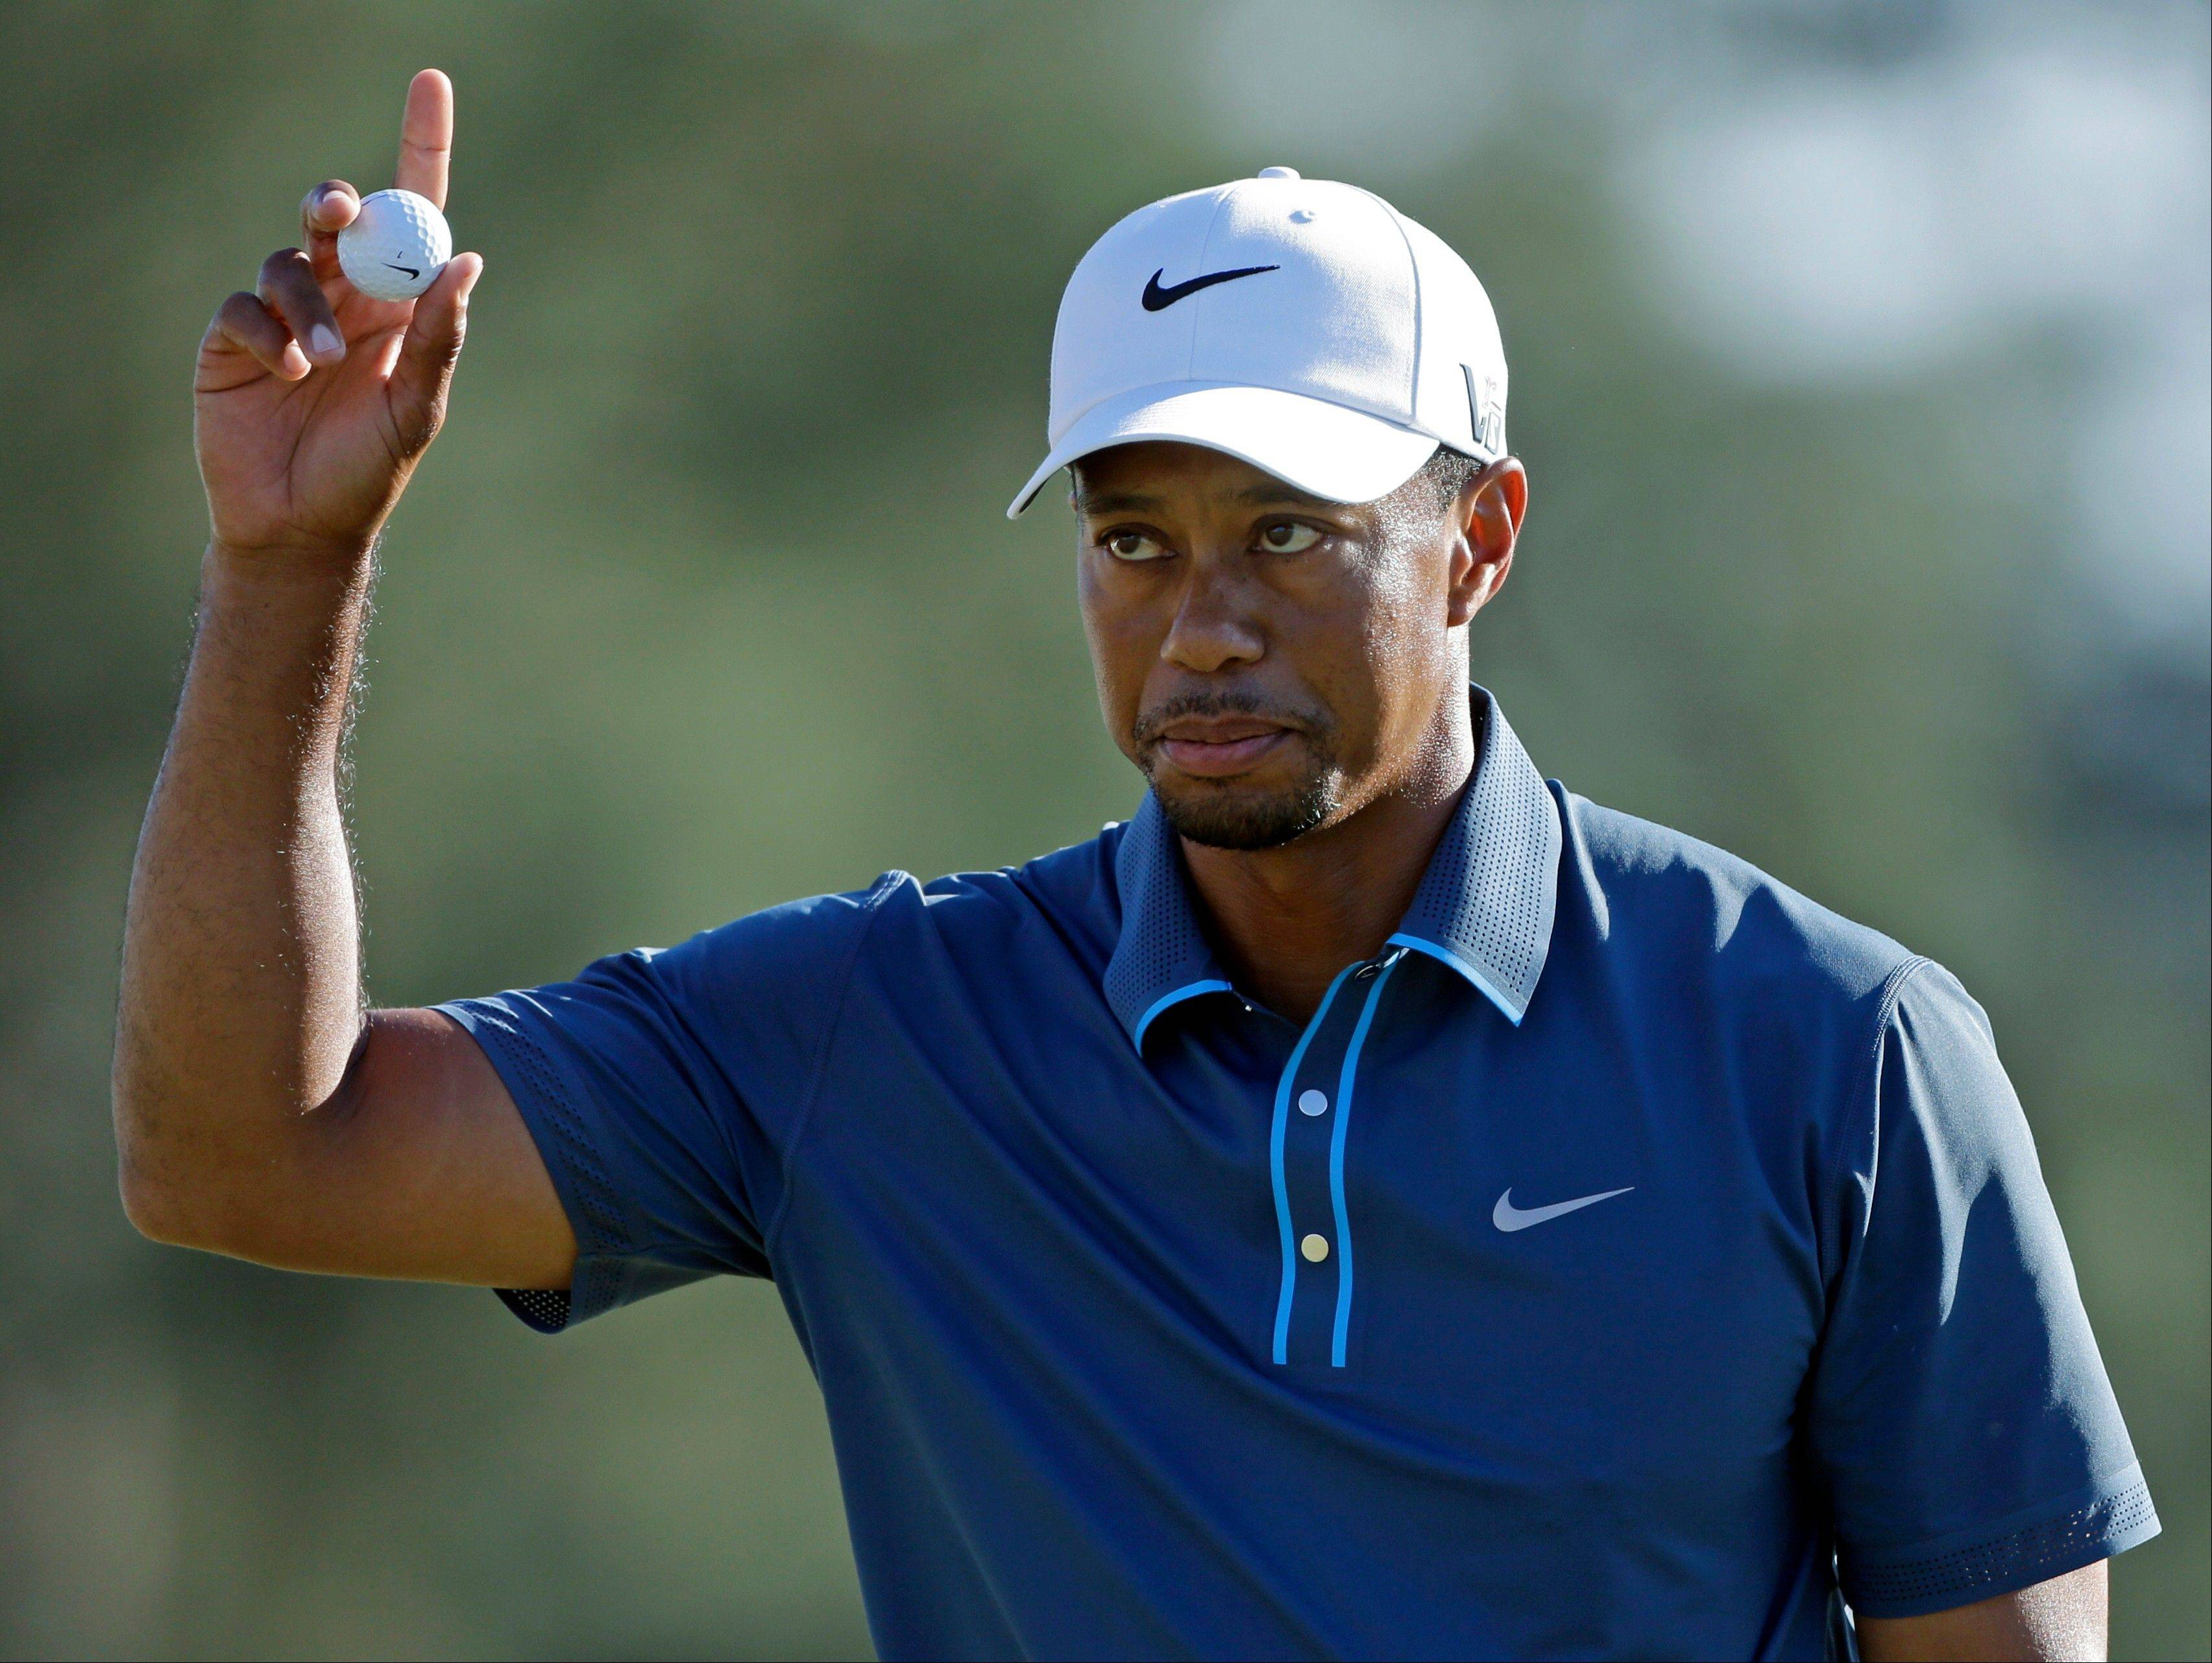 Tiger Woods holds up his ball after putting out on the 18th hole during the third round of the Masters golf tournament Saturday, April 13, 2013, in Augusta, Ga.